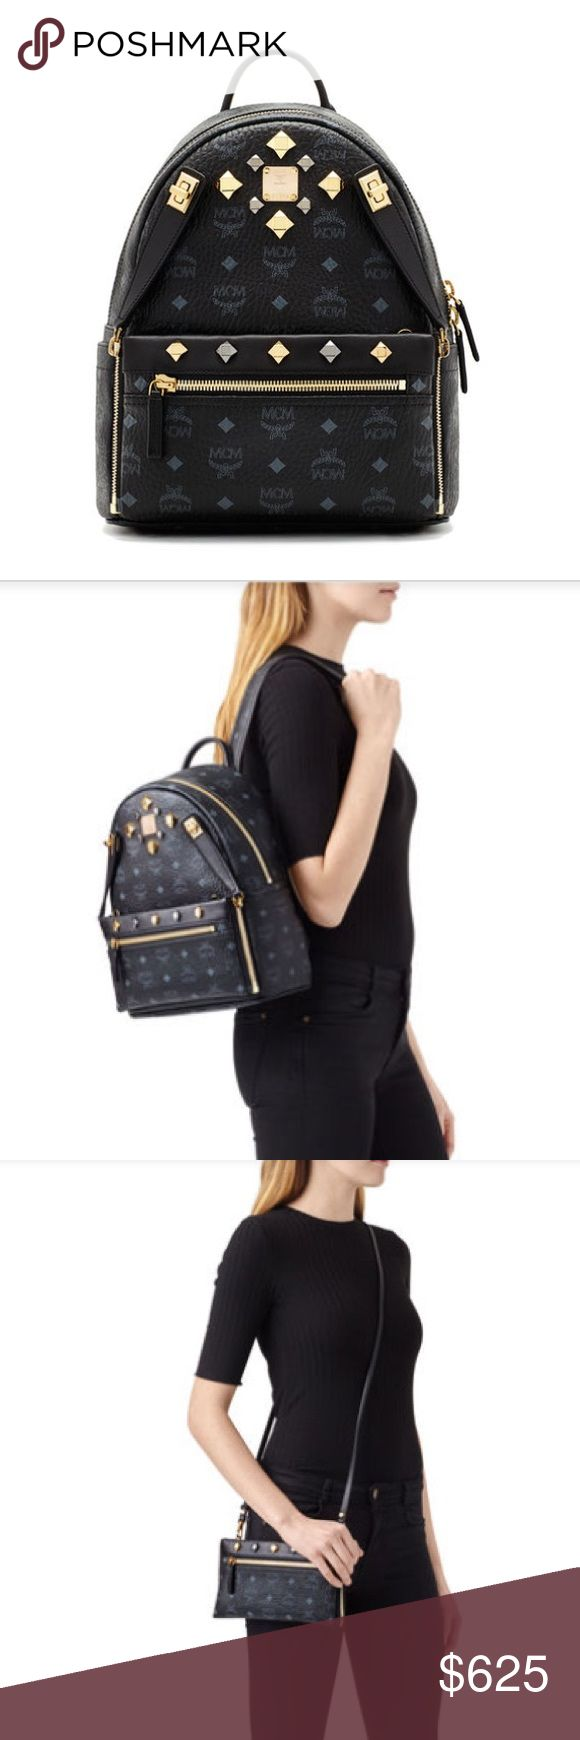 MCM Backpack MCM Dual Stark Backpack in black. Comes with the cross-body purse. Only used a handful of times, and taken in very good care. Still in perfect condition. 100% authentic. Smoke free home. Serious inquiries only please MCM Bags Backpacks